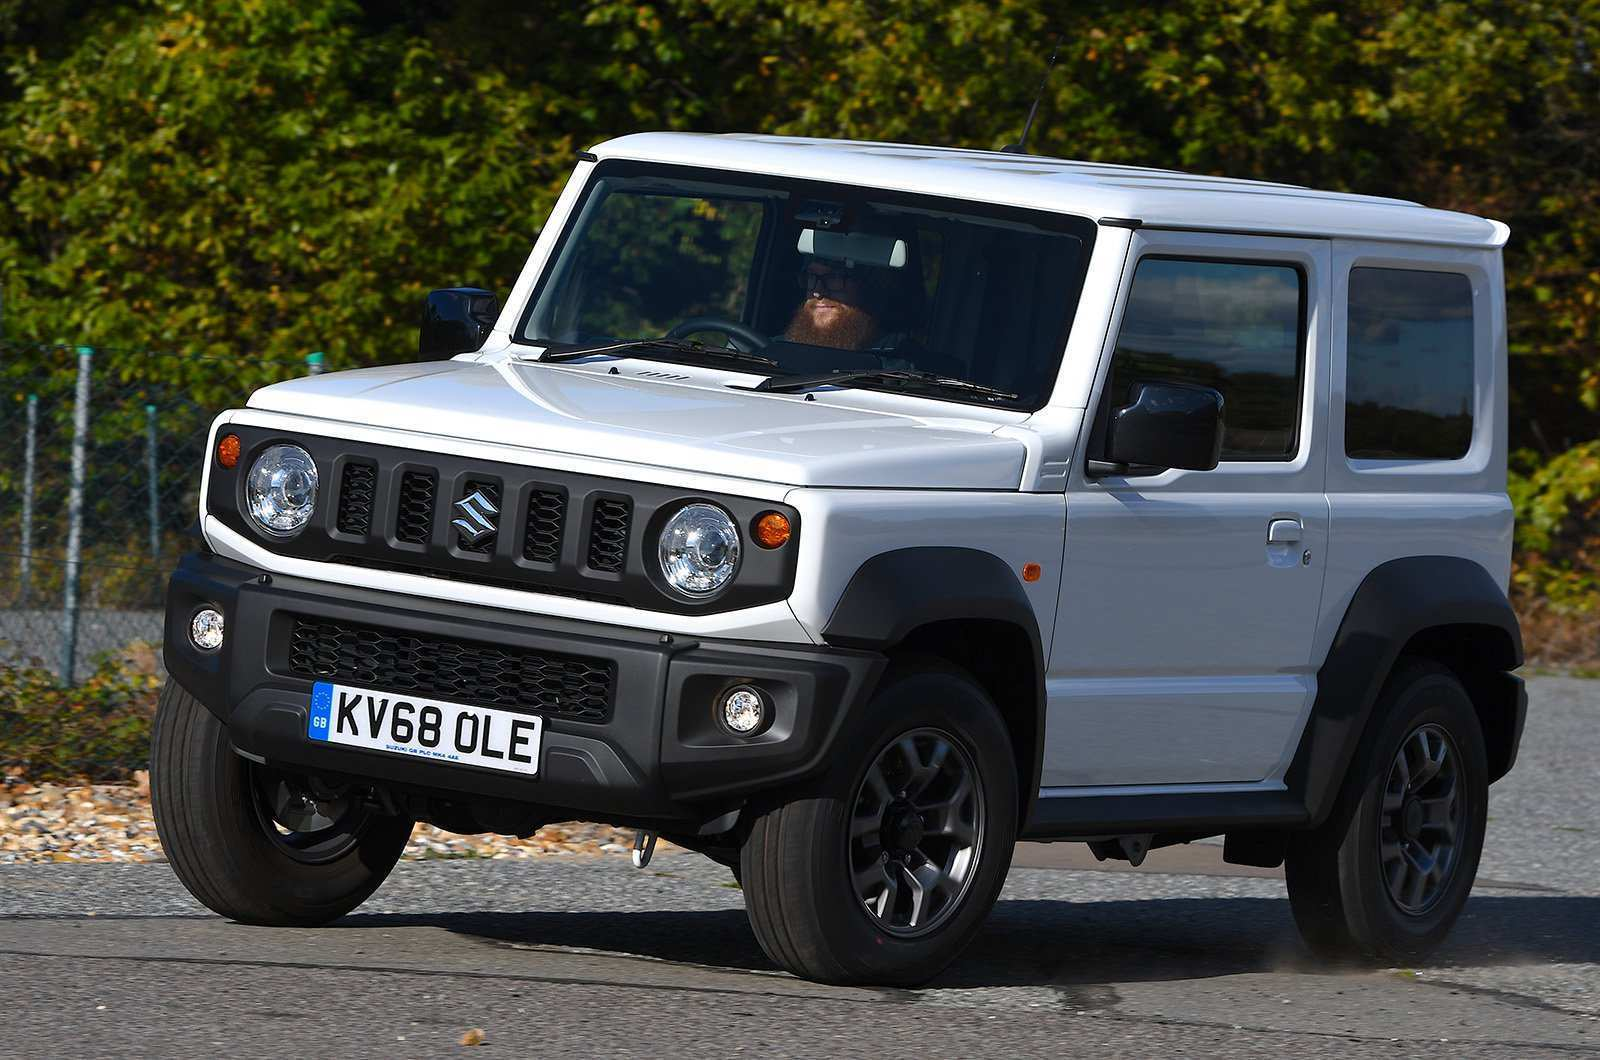 35 The Best 2019 Suzuki Jimny Model Release Date And Concept